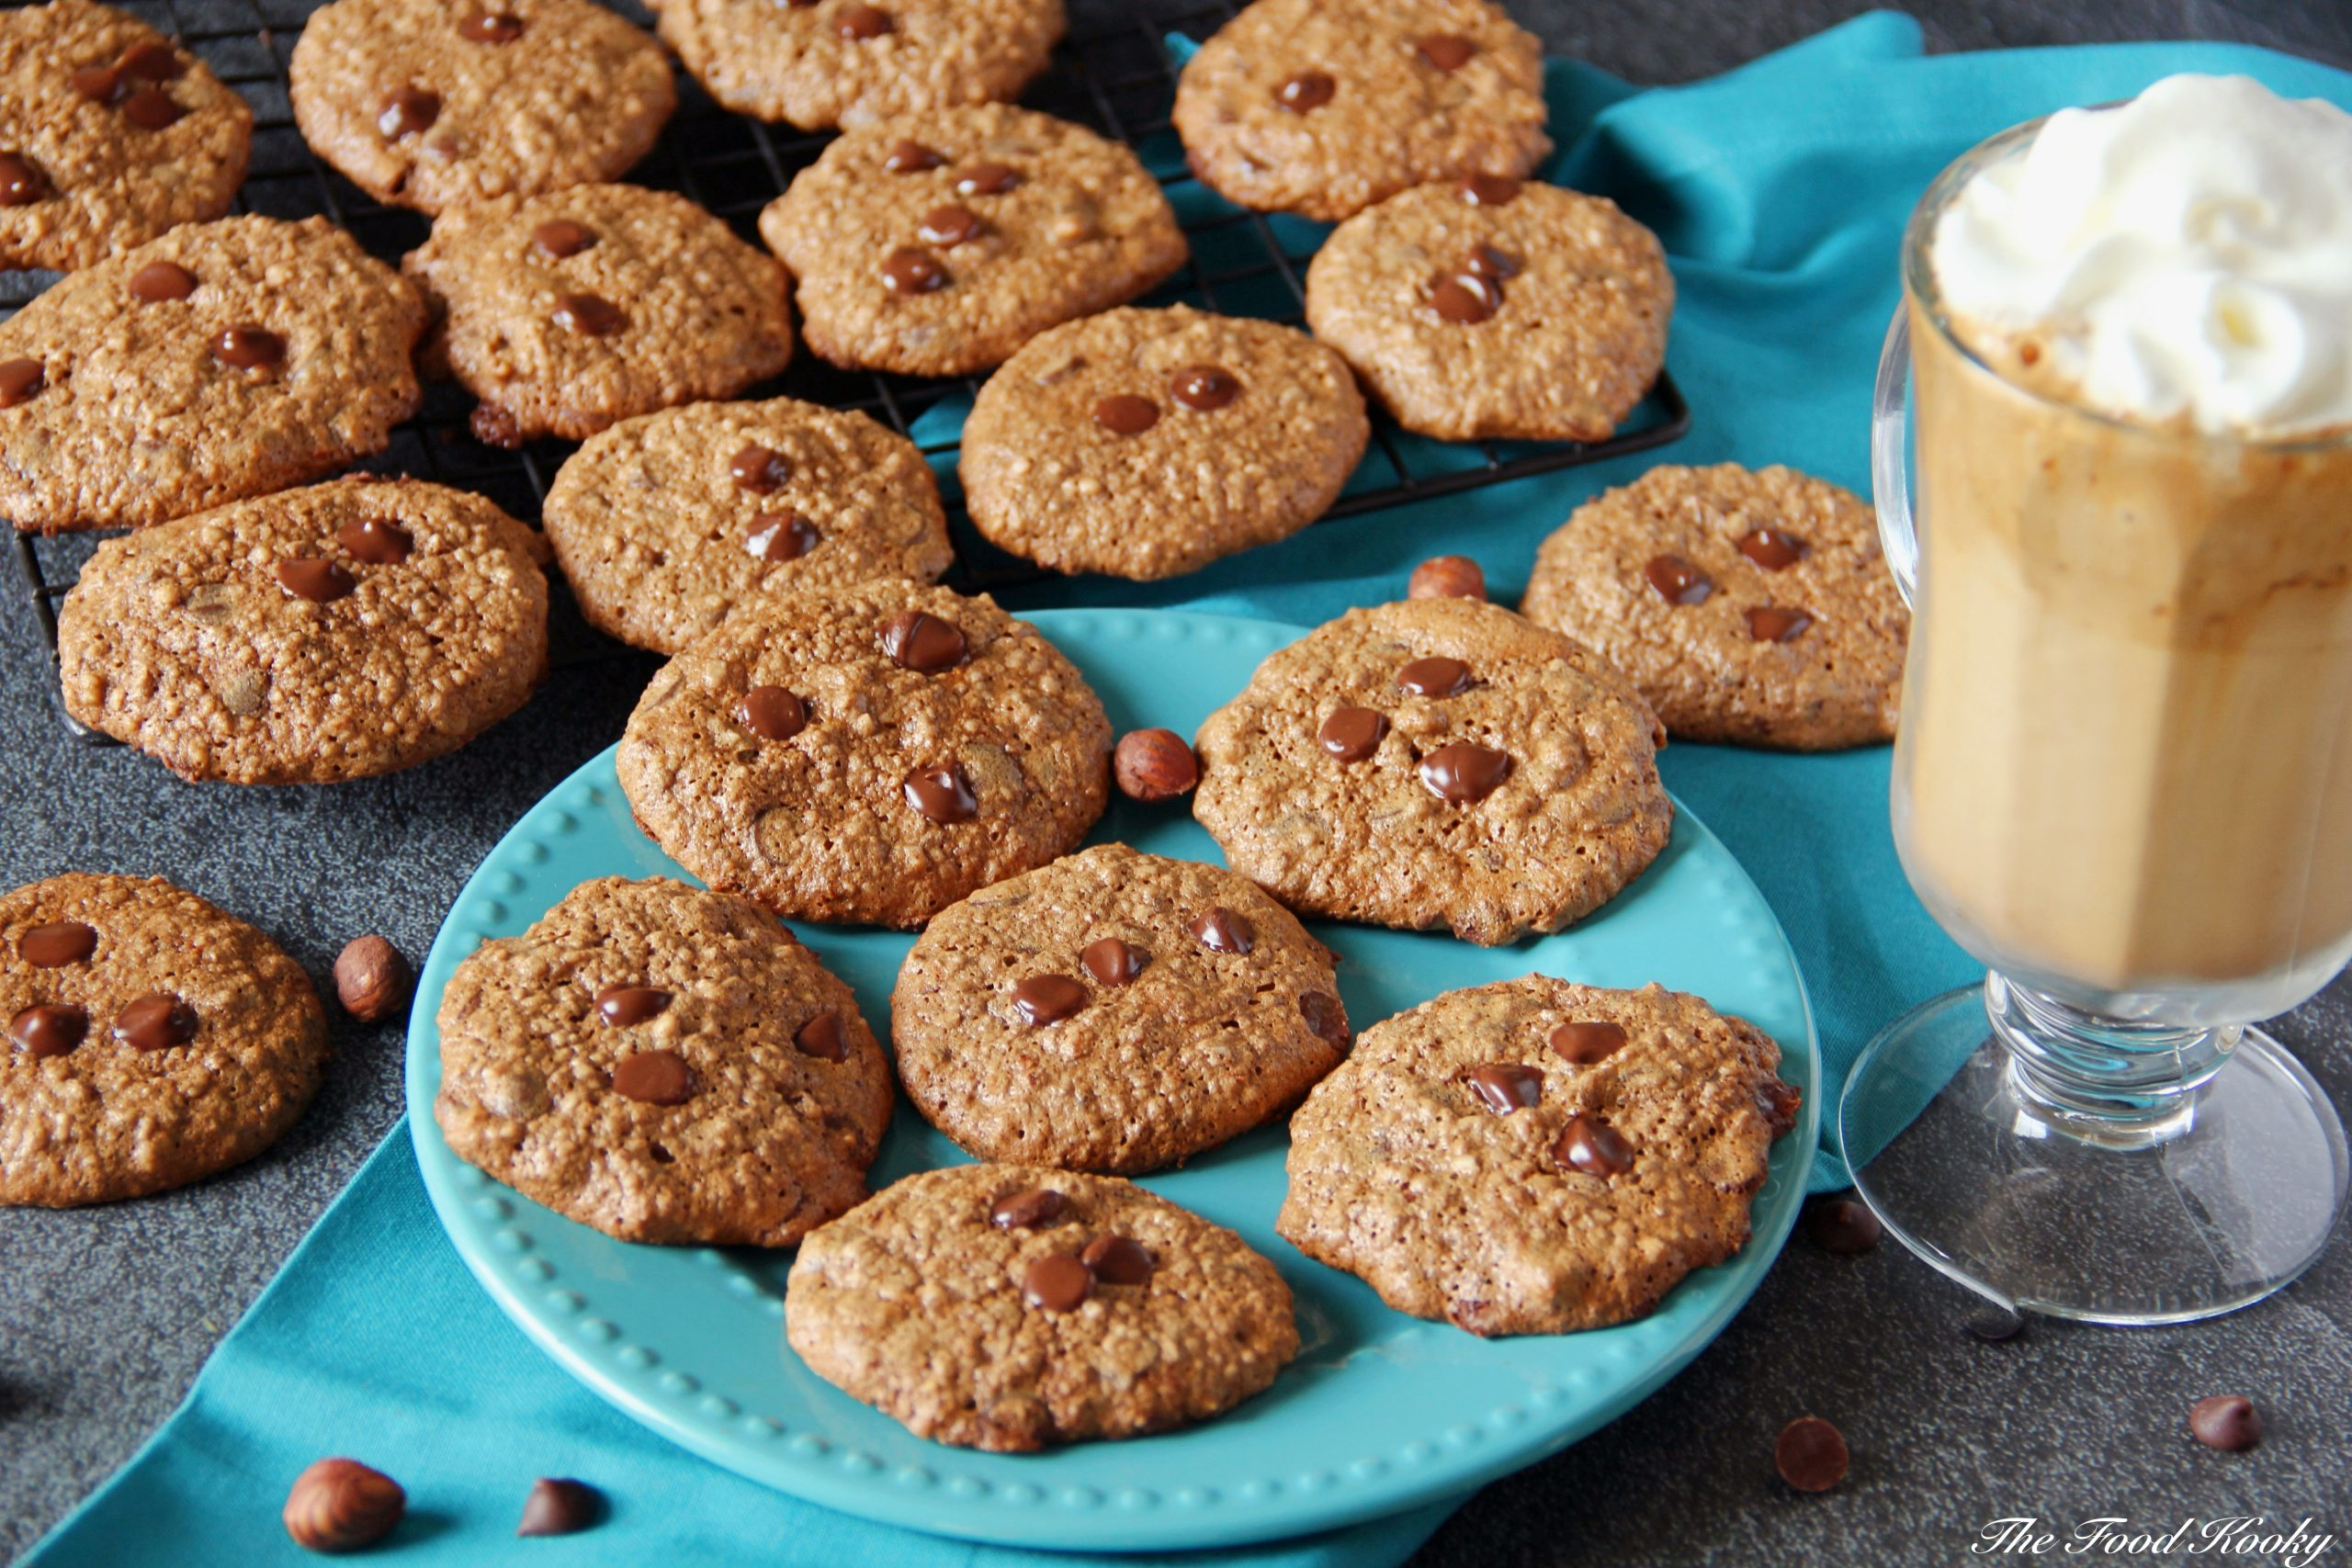 Cookies with Hazelnuts Coffee and Chocolate Chips (Gluten Free)